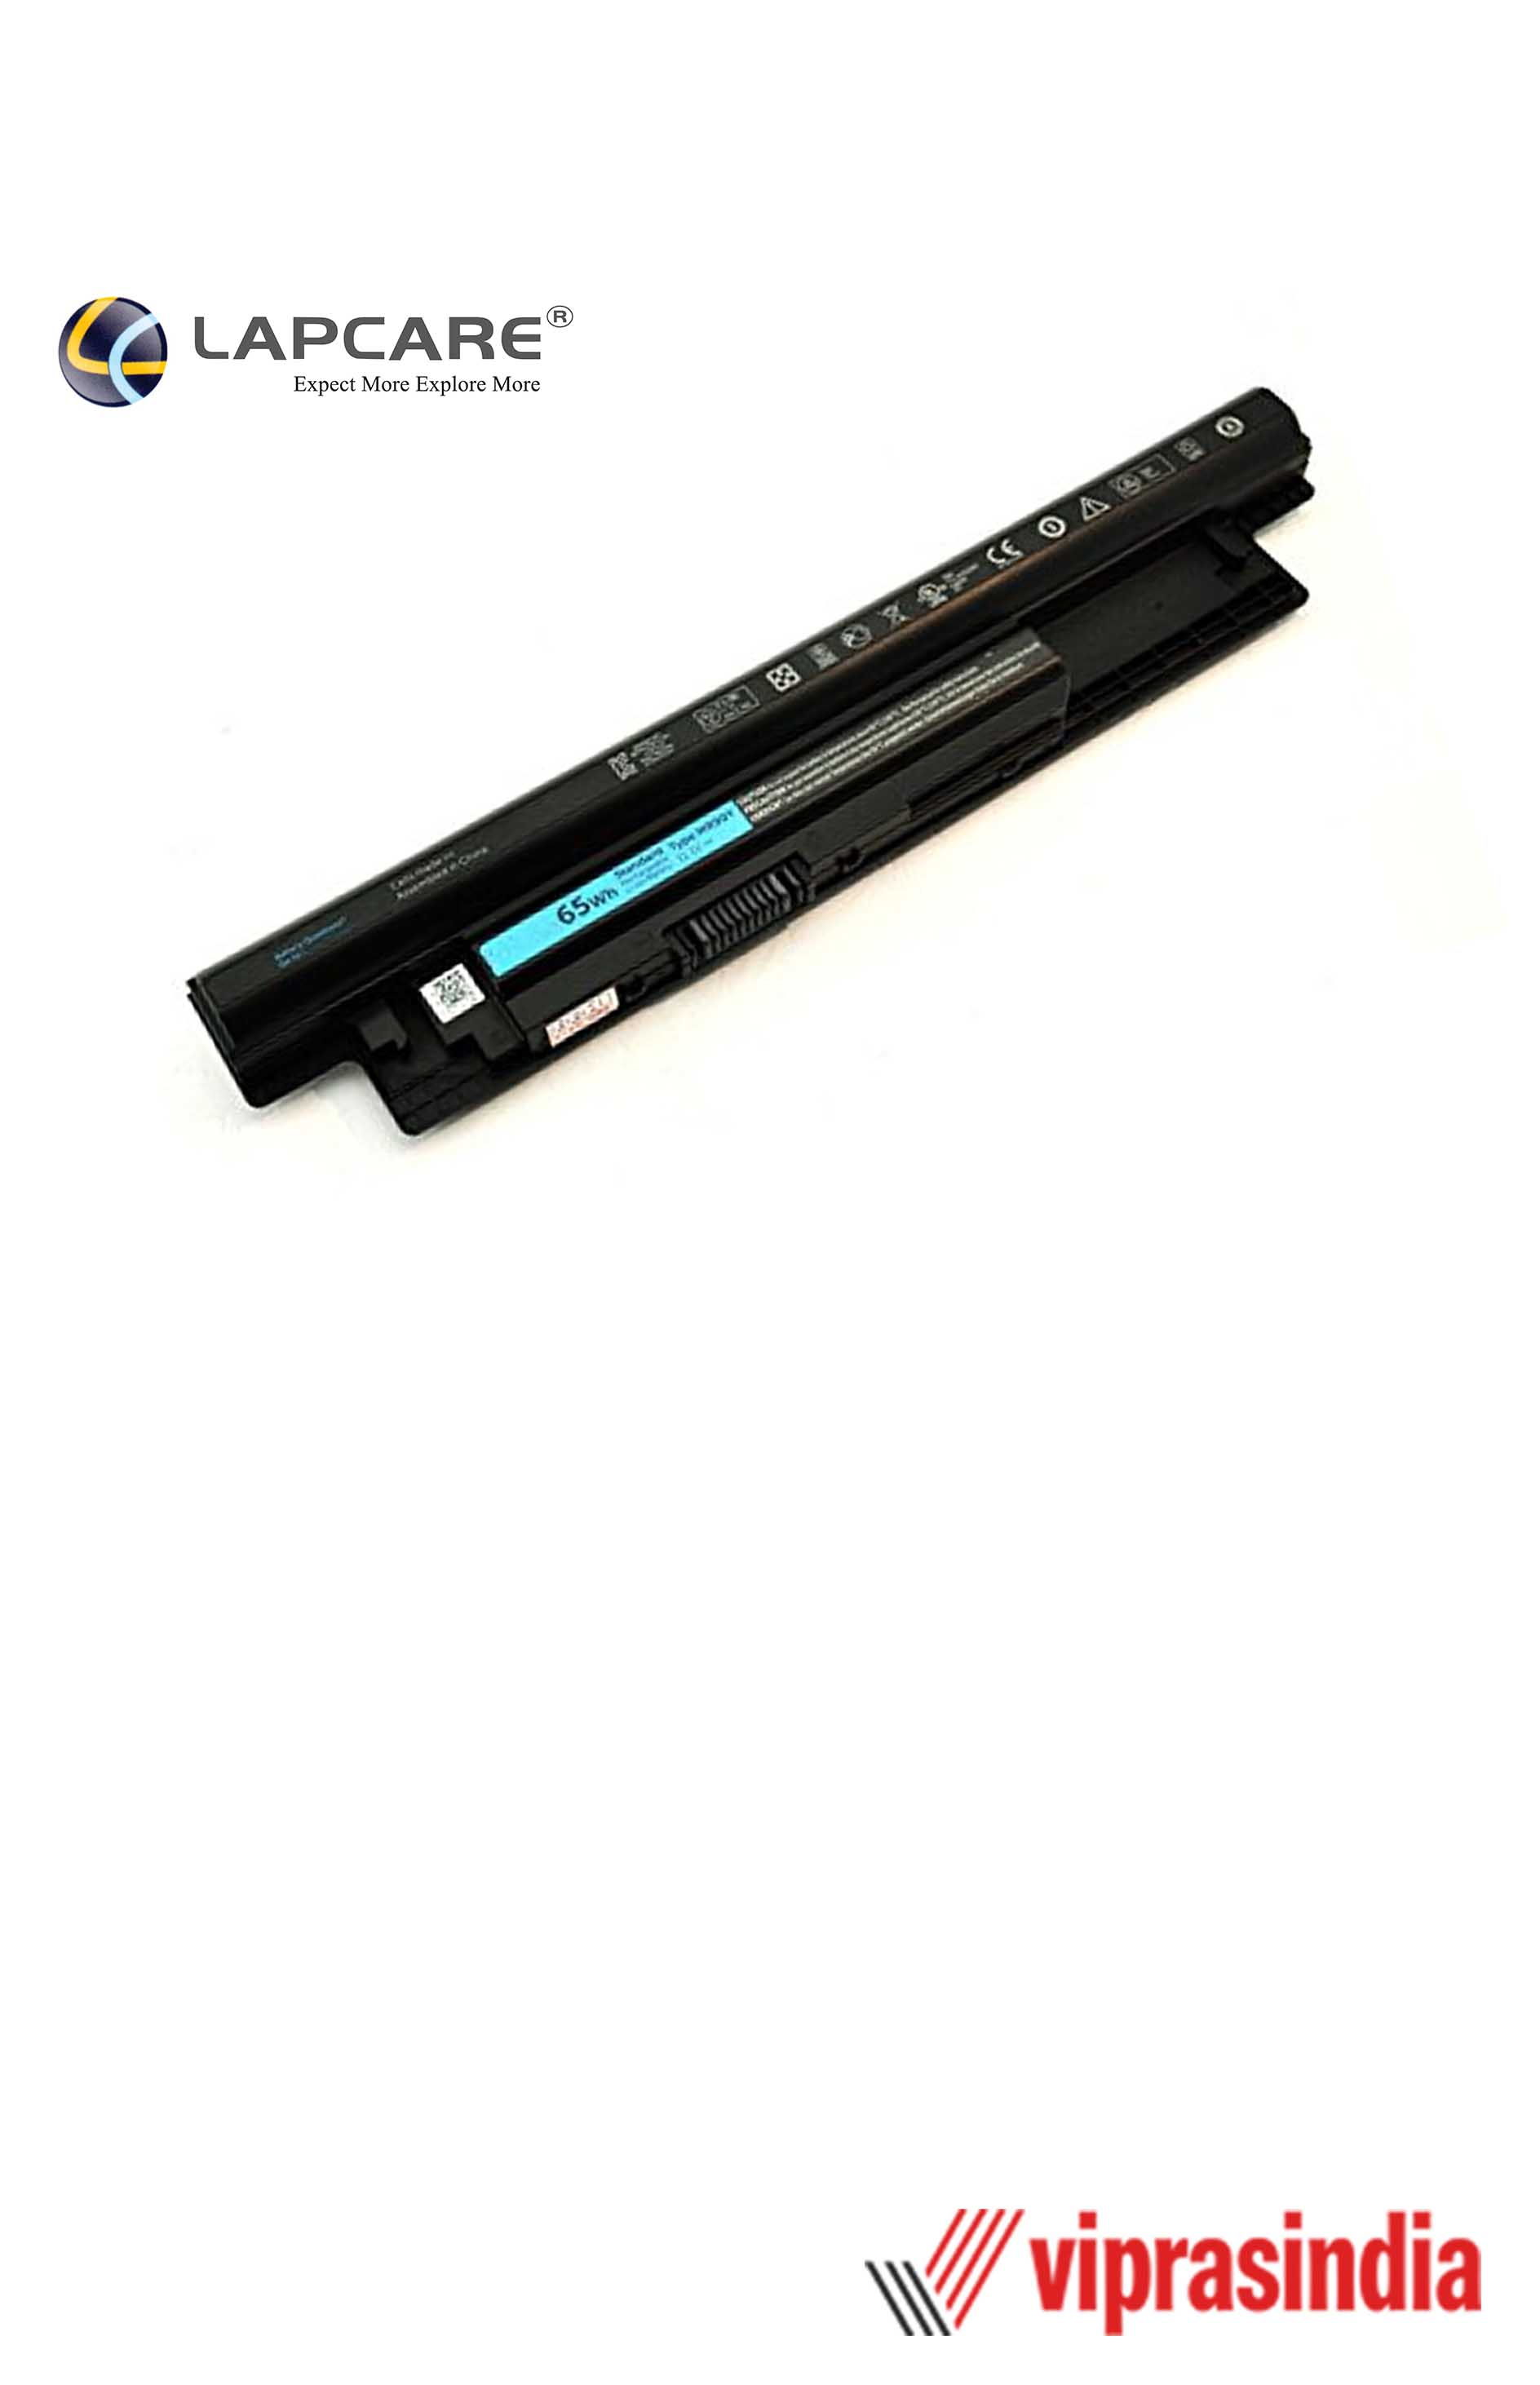 Laptop Battery Lapcare Compatible For Dell 3521 4C